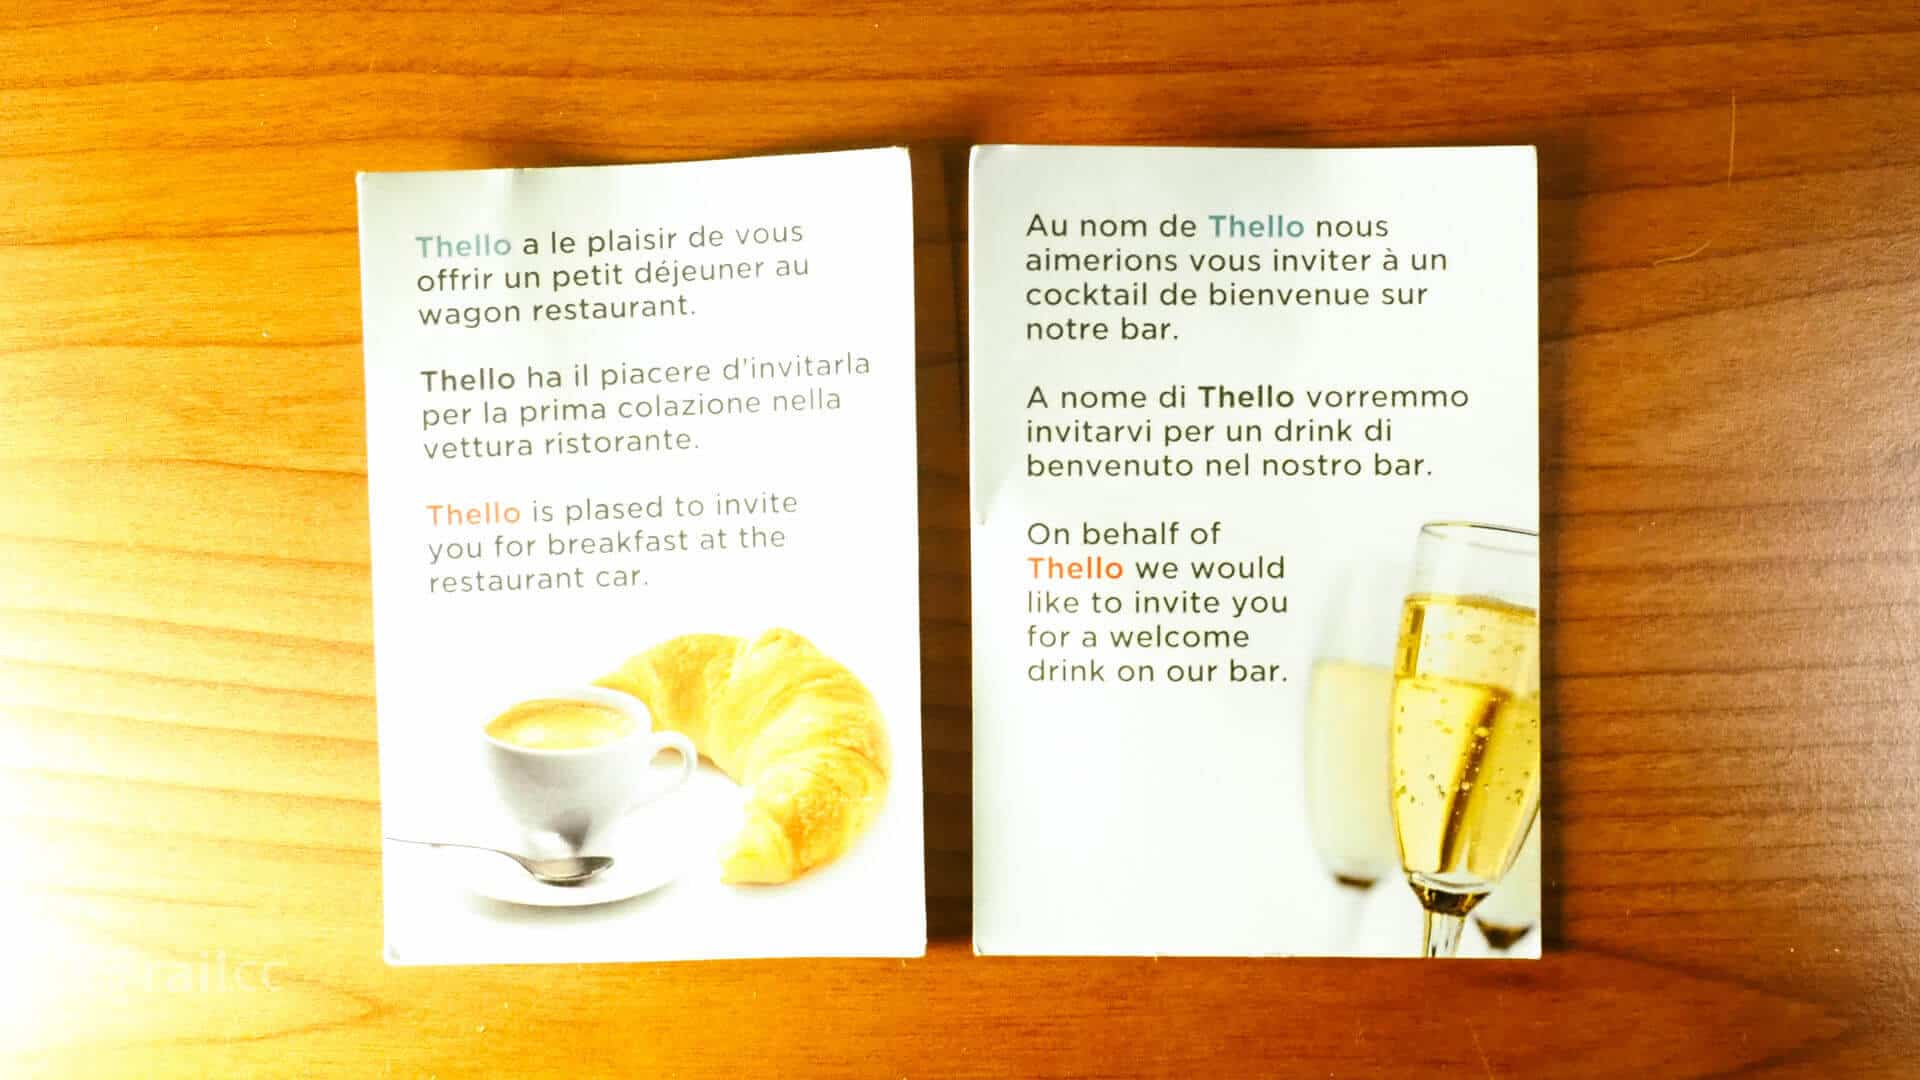 The Thello welcome drink on board of the sleeper cars.